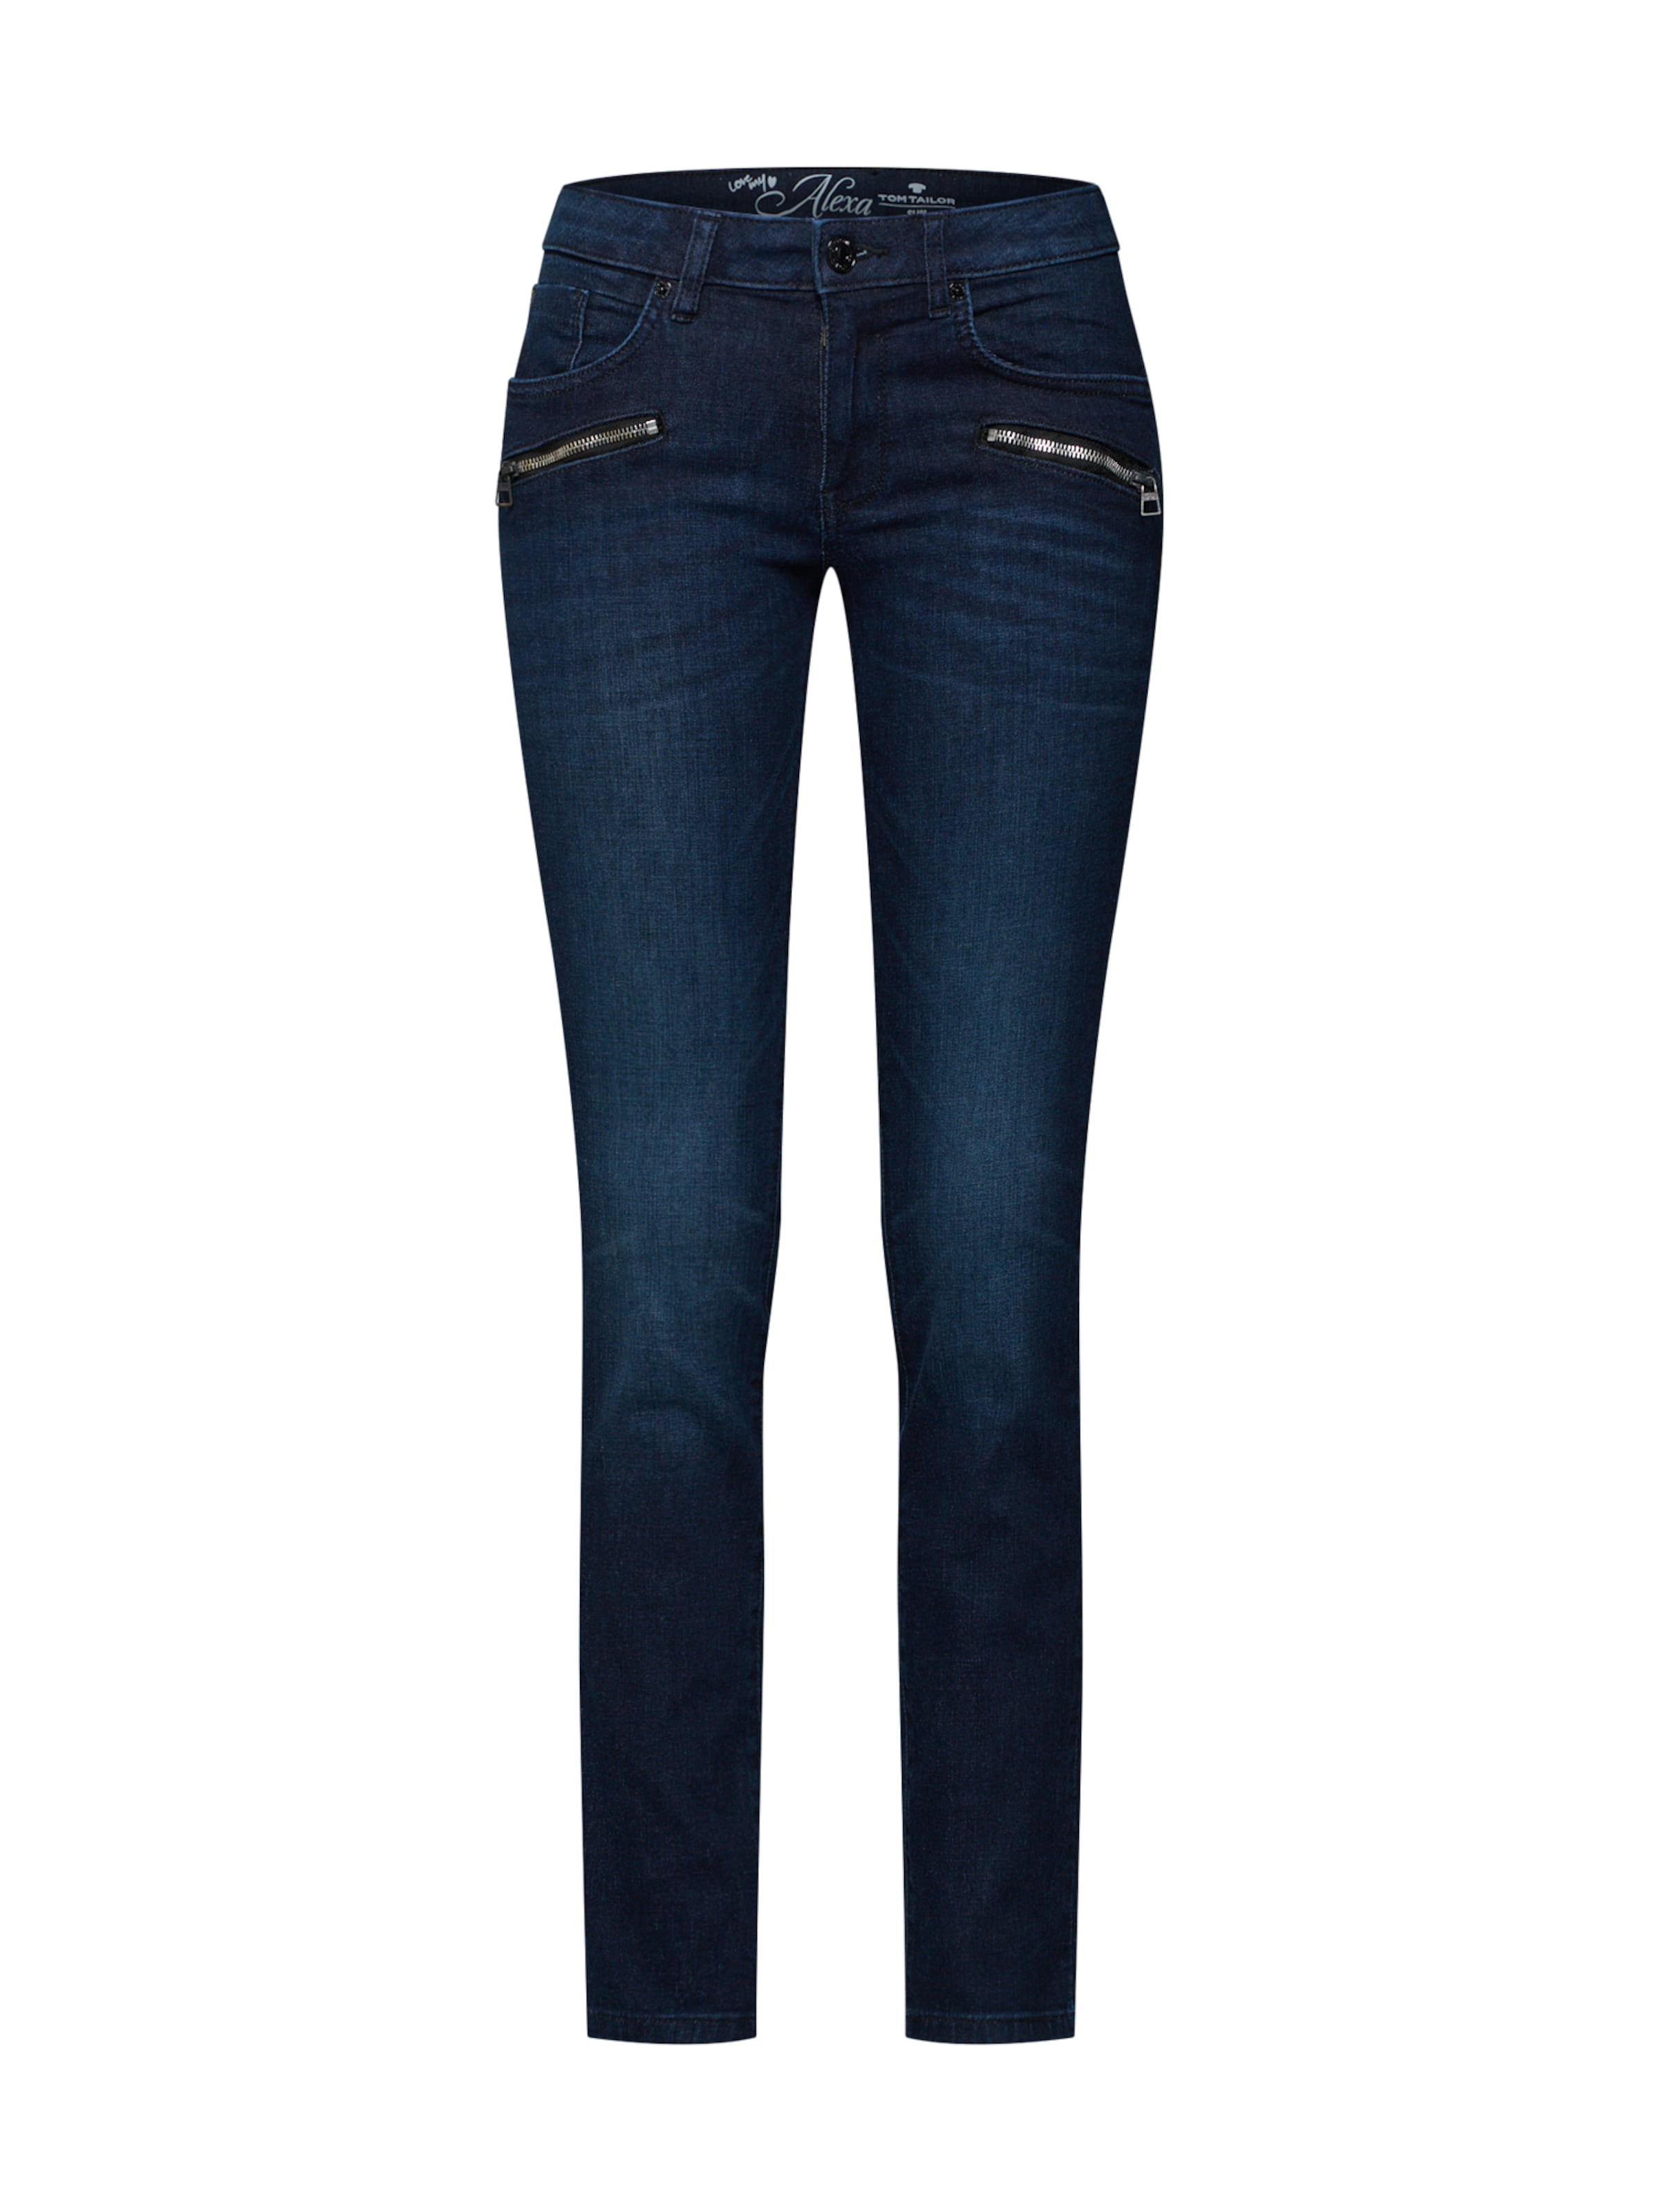 Blue In Jeans Tom Tailor Denim trQshd